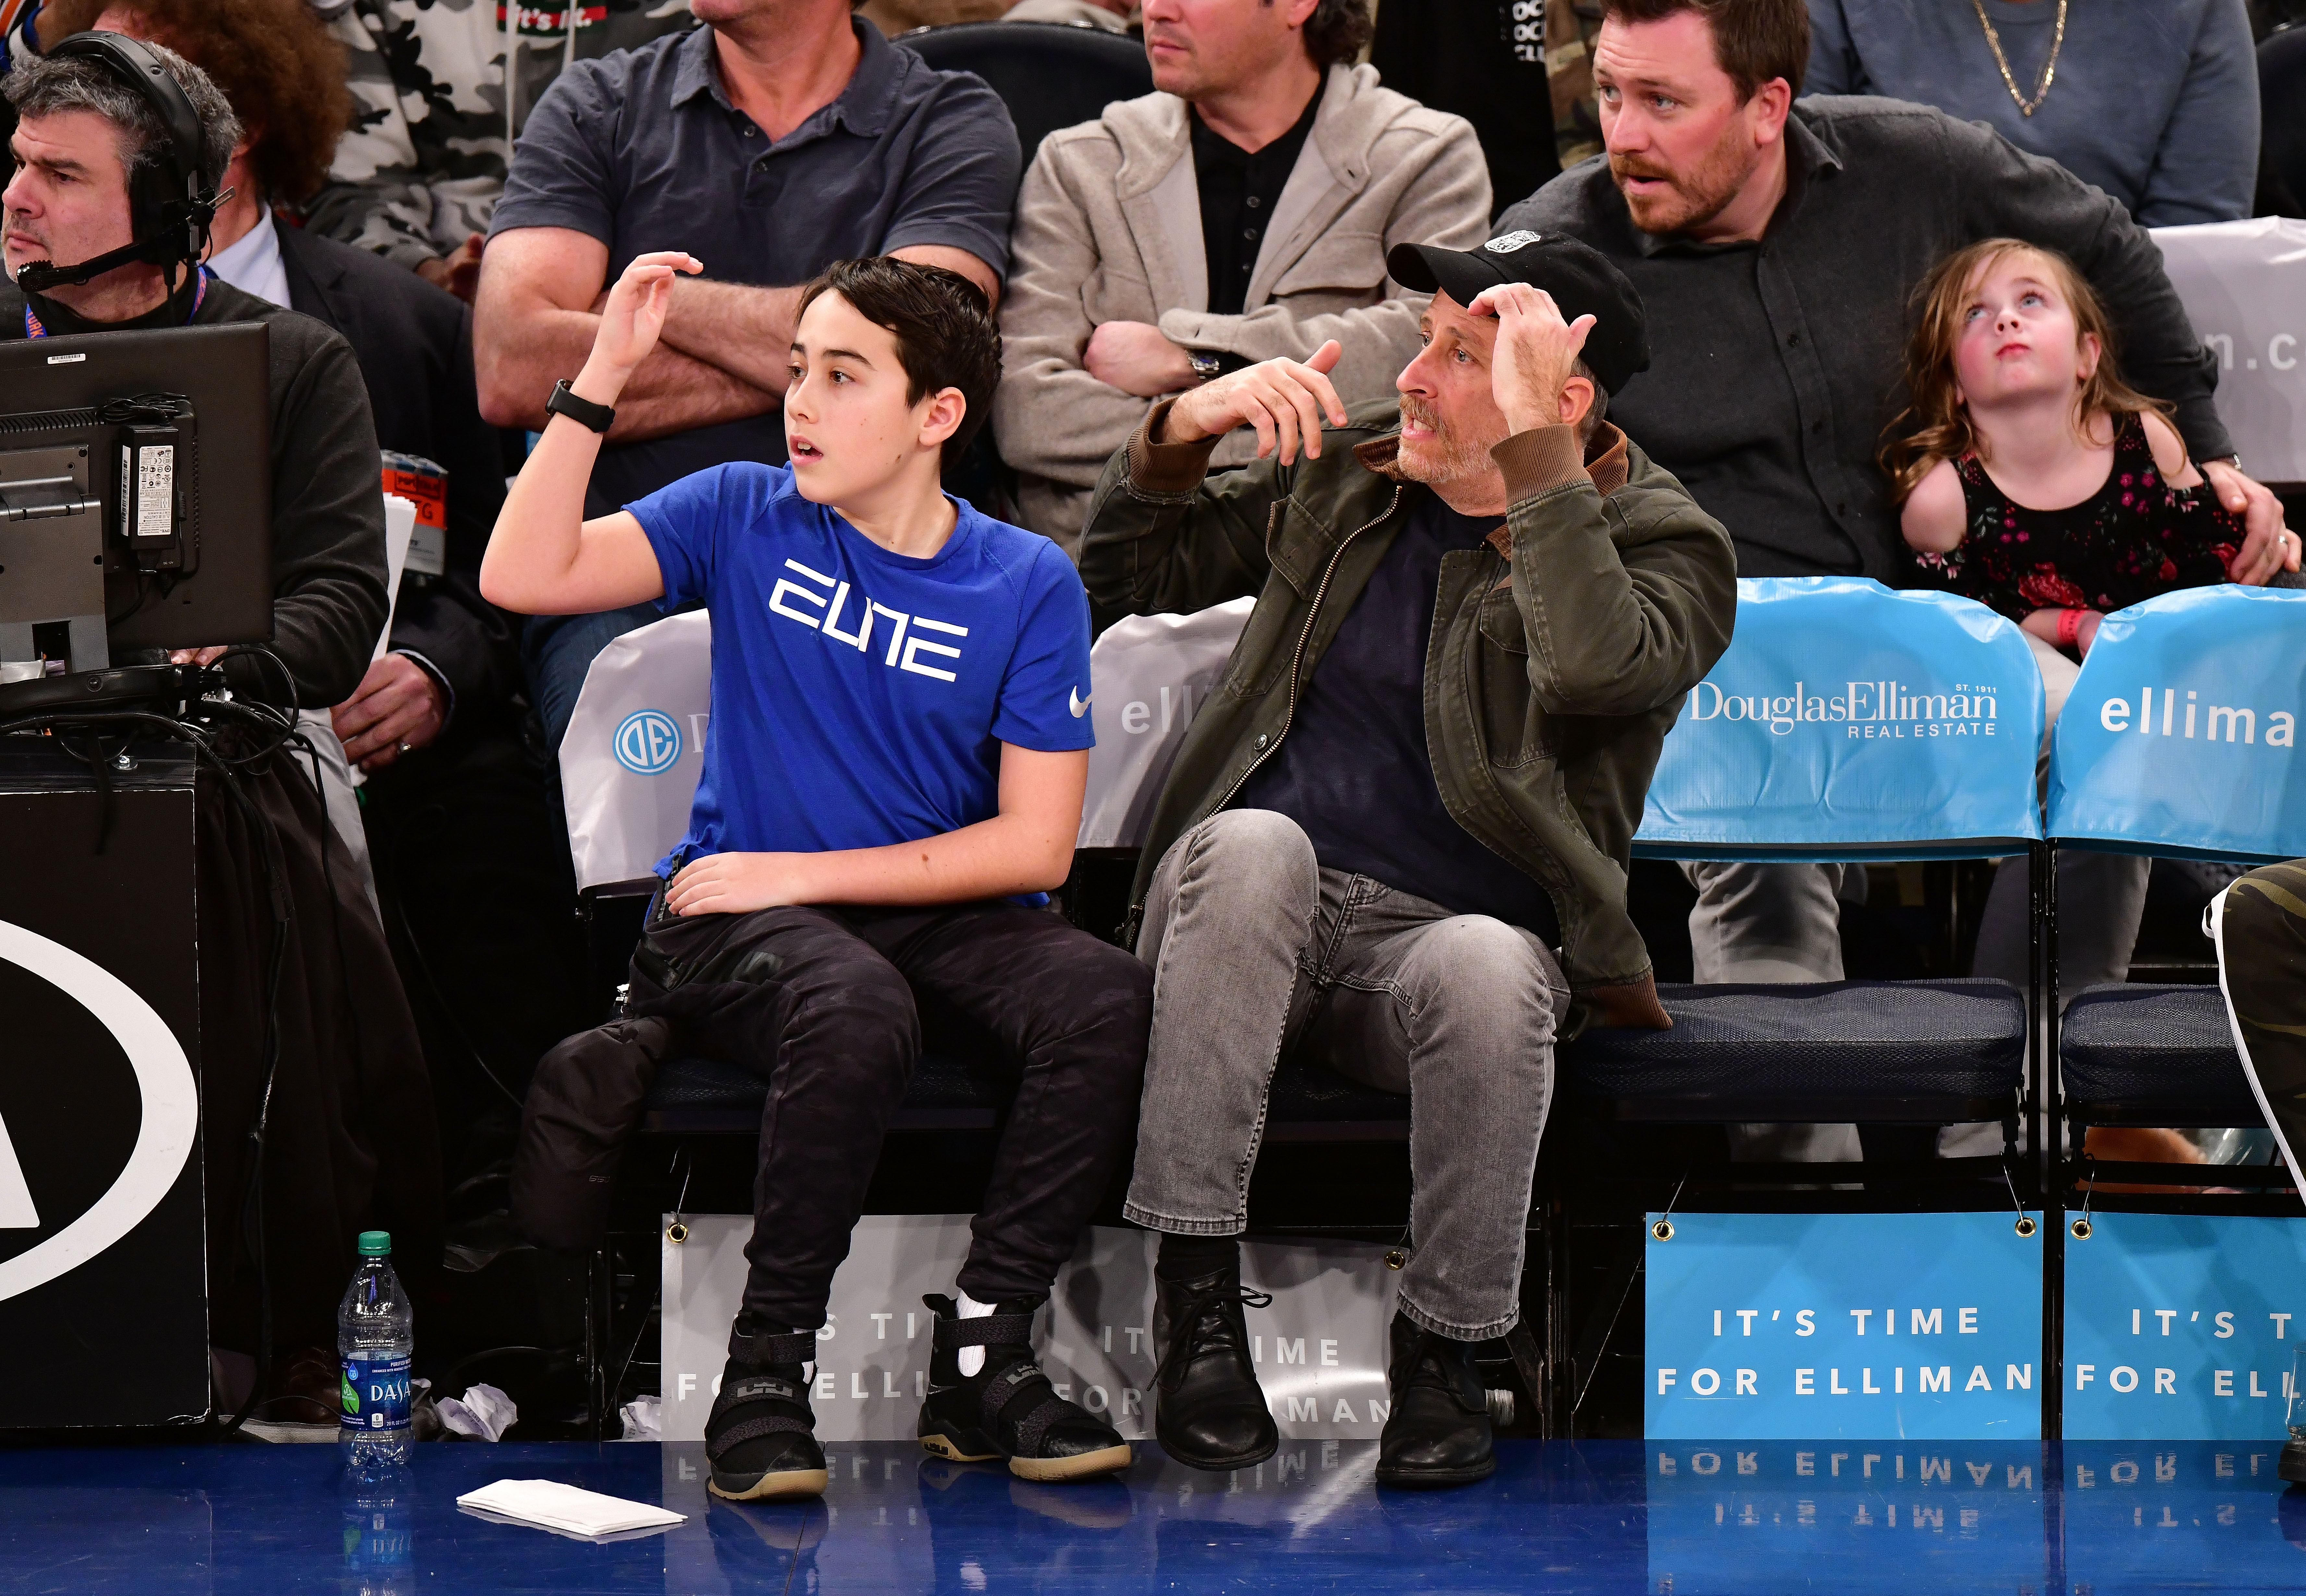 NEW YORK, NY - JANUARY 14:  Nathan Stewart and Jon Stewart attend the New York Knicks Vs New Orleans Pelicans game at Madison Square Garden on January 14, 2018 in New York City.  (Photo by James Devaney/Getty Images)